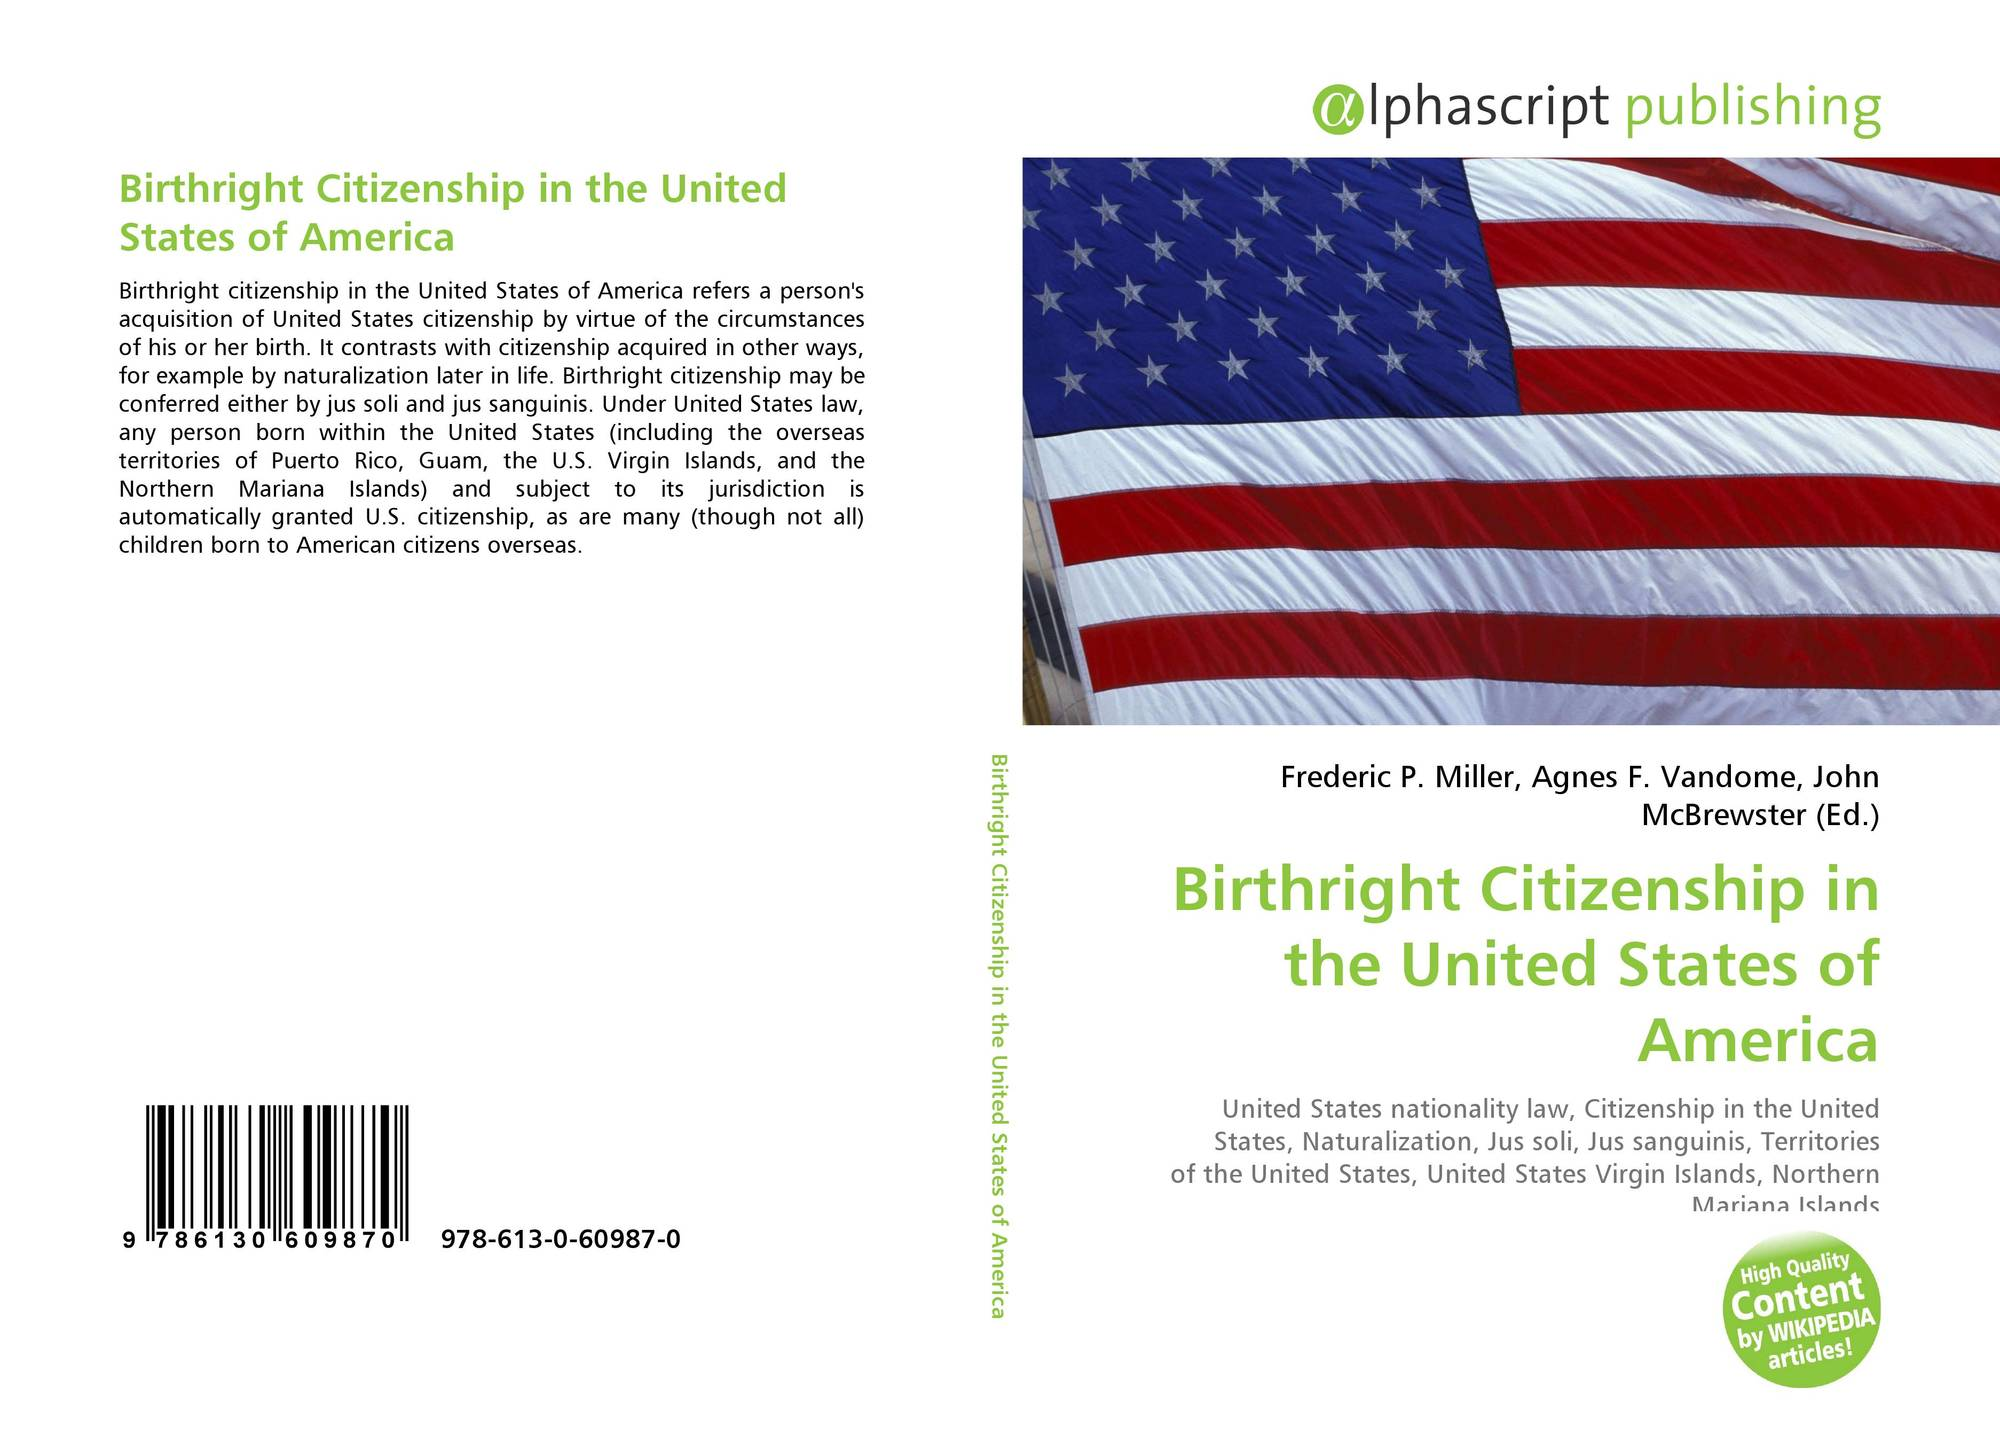 an analysis of citizenship in the united states A recent national survey sponsored by the brennan center for justice at nyu school of proof of citizenship as many as 7% of united states citizens.